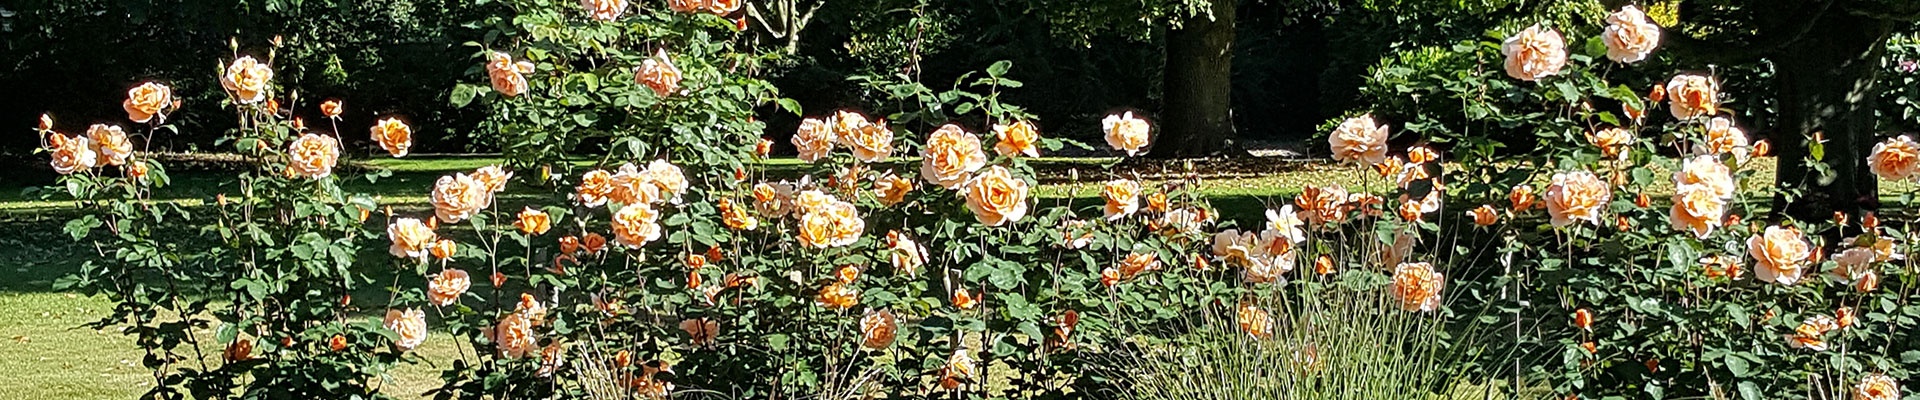 Photograph of orange flowering roses in the crematorium gardens